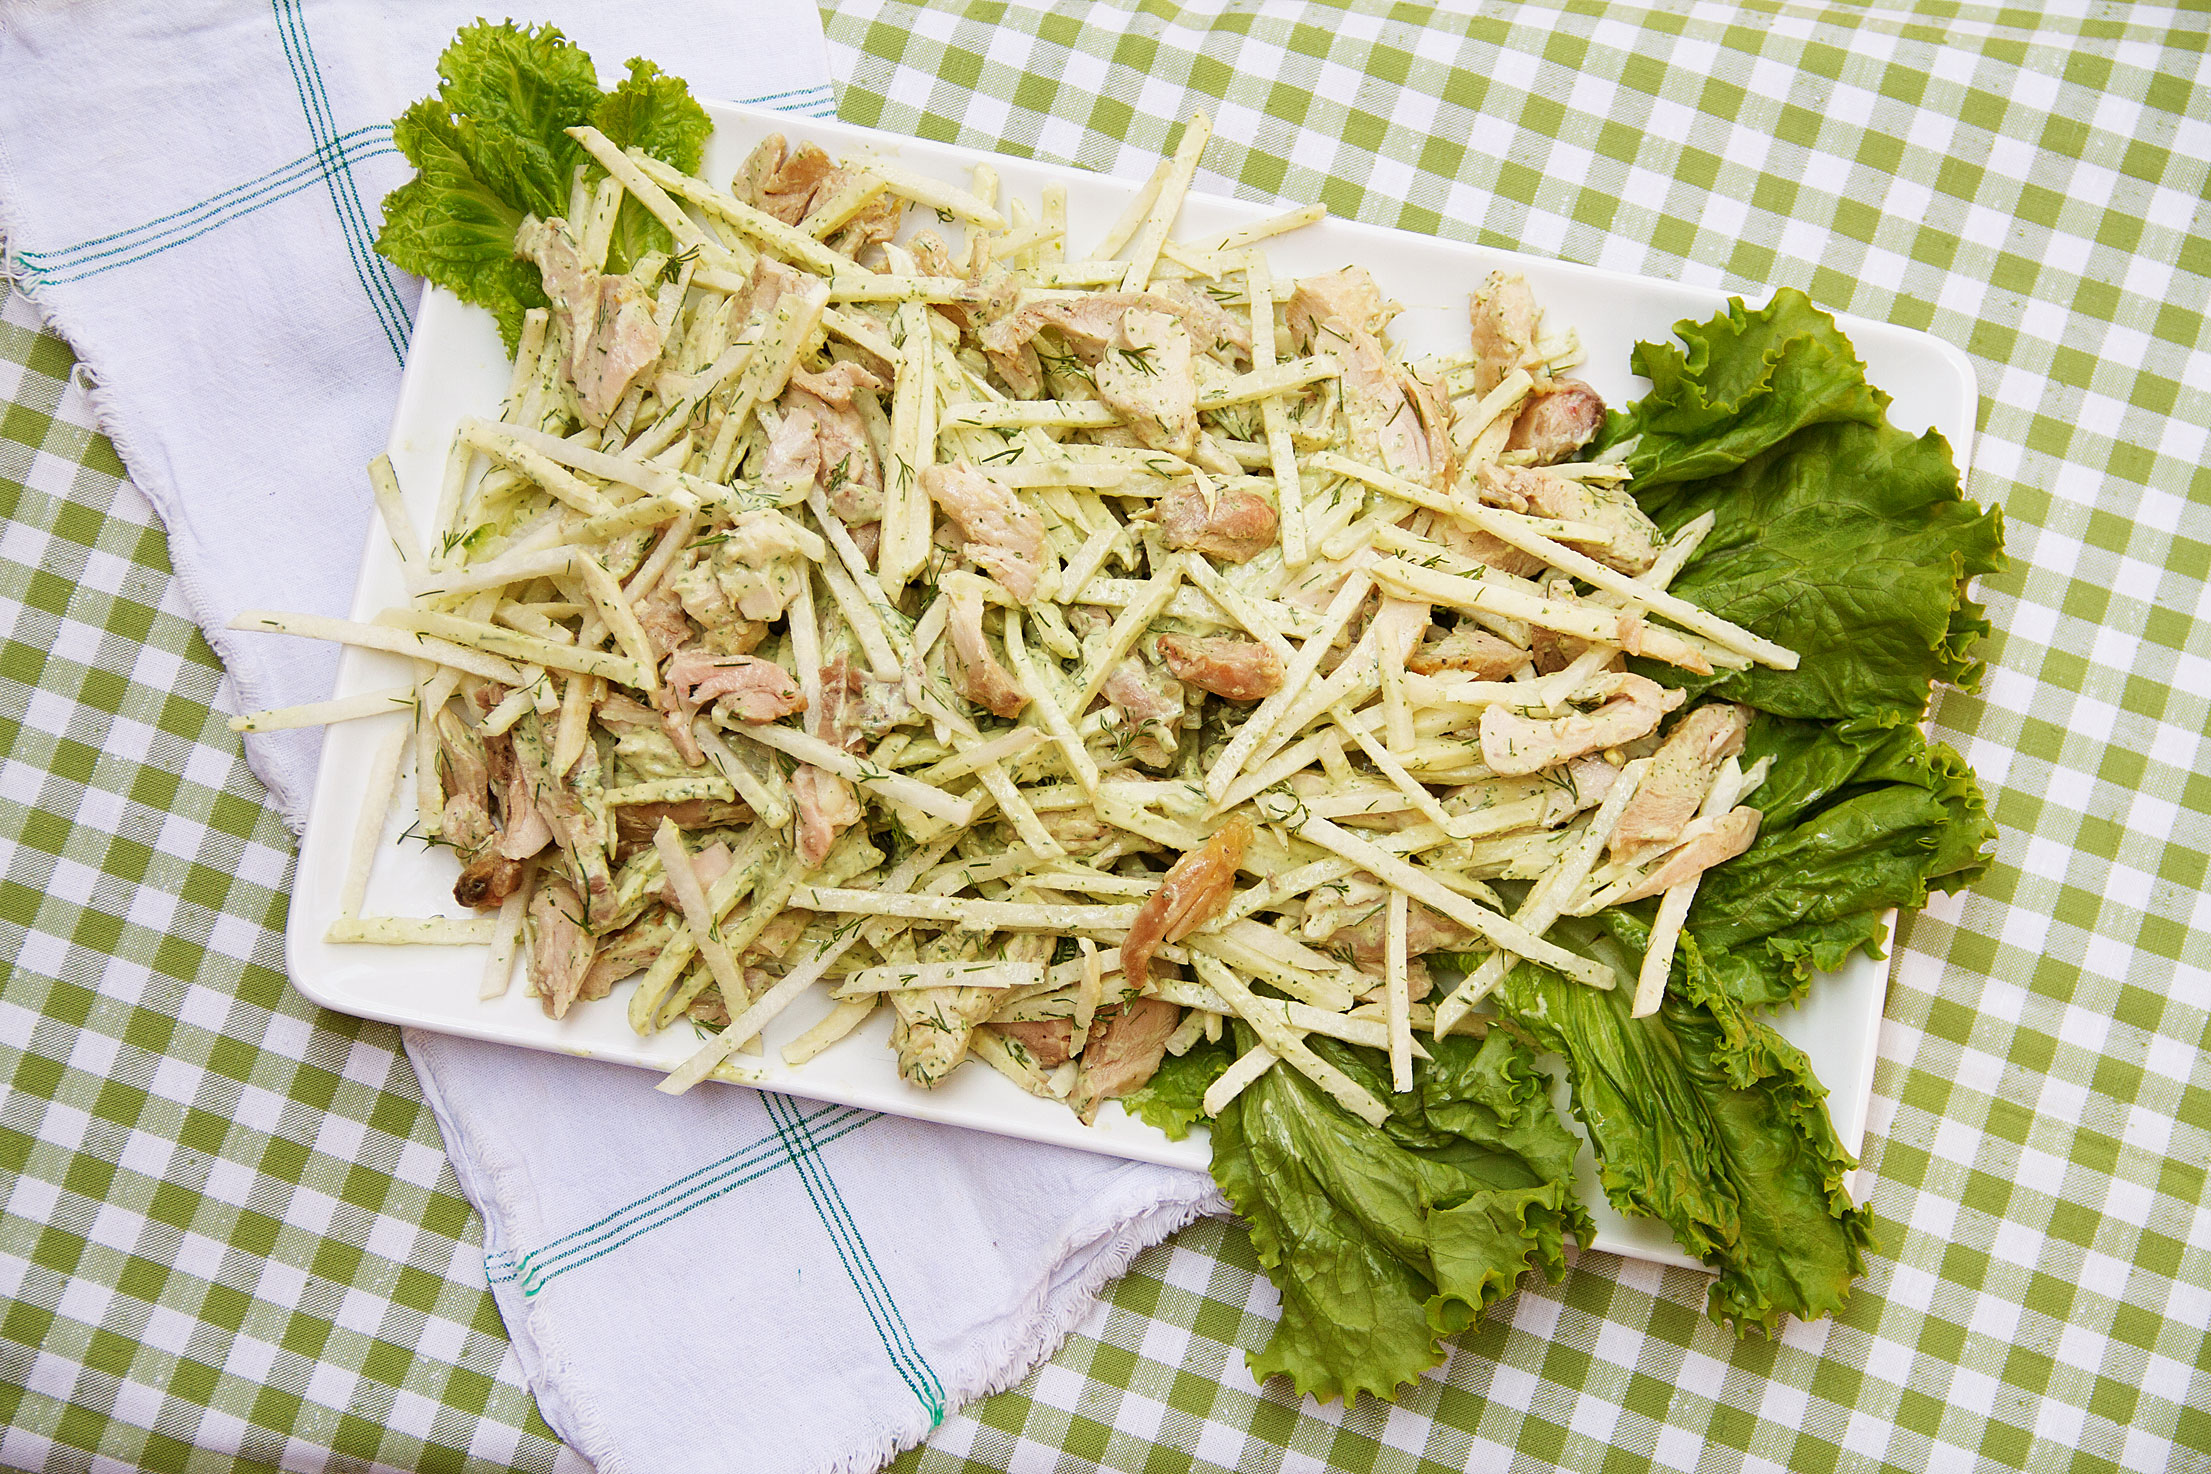 Chicken and Jicama Salad with Green Goddess Dressing